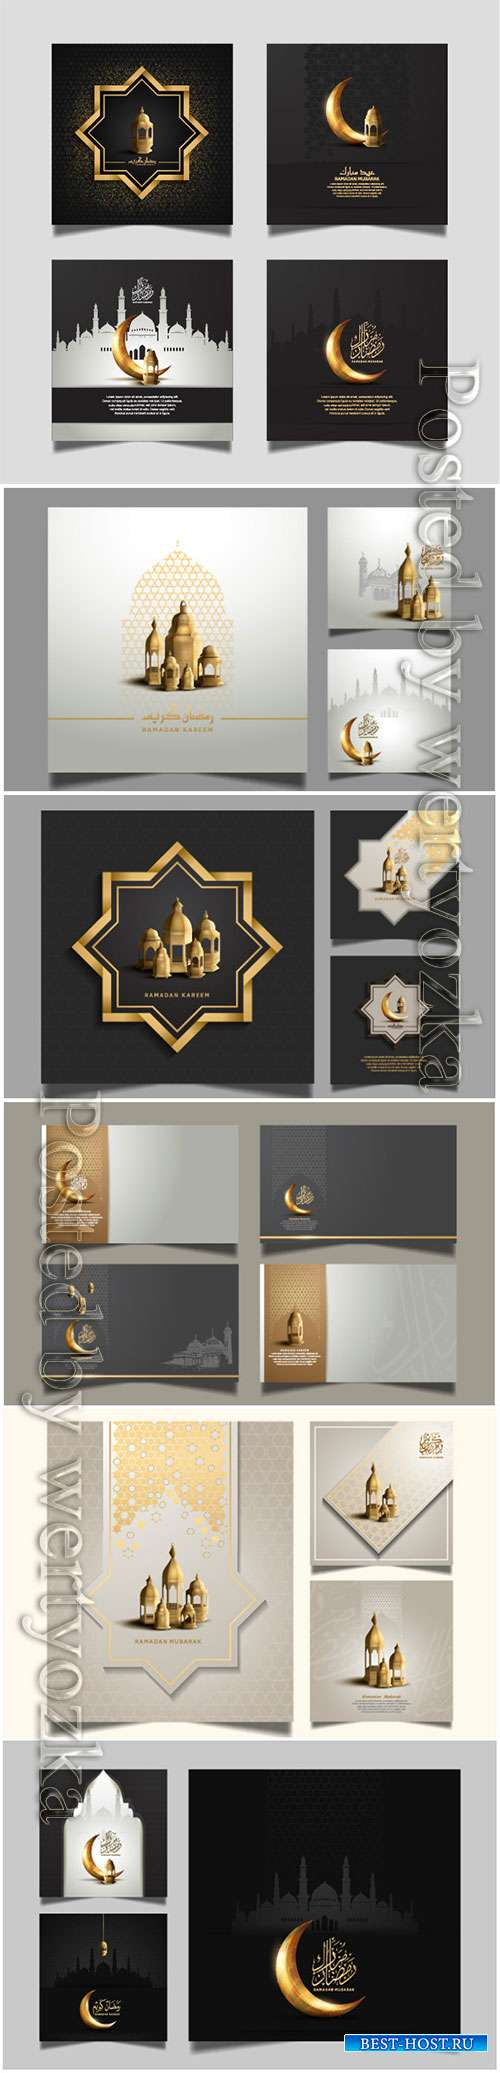 Ramadan vector design set for Holy Ramadan celebration event